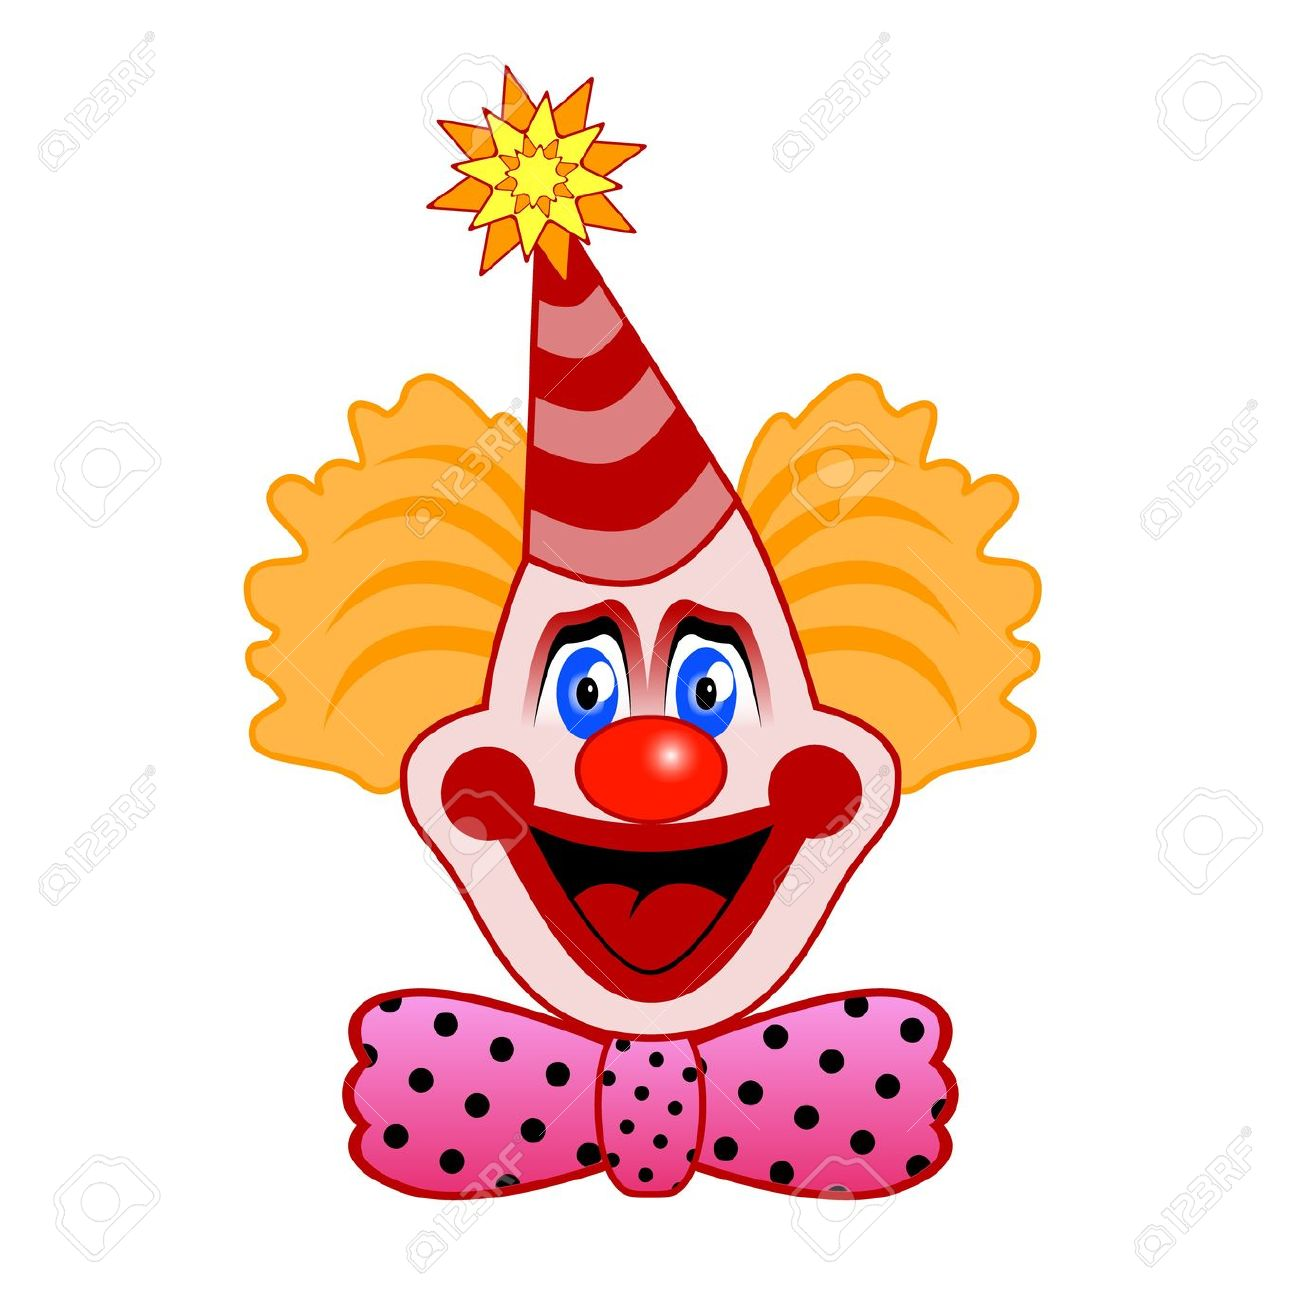 clown face: Head of clown with a bow tie - Circus Joker Face PNG